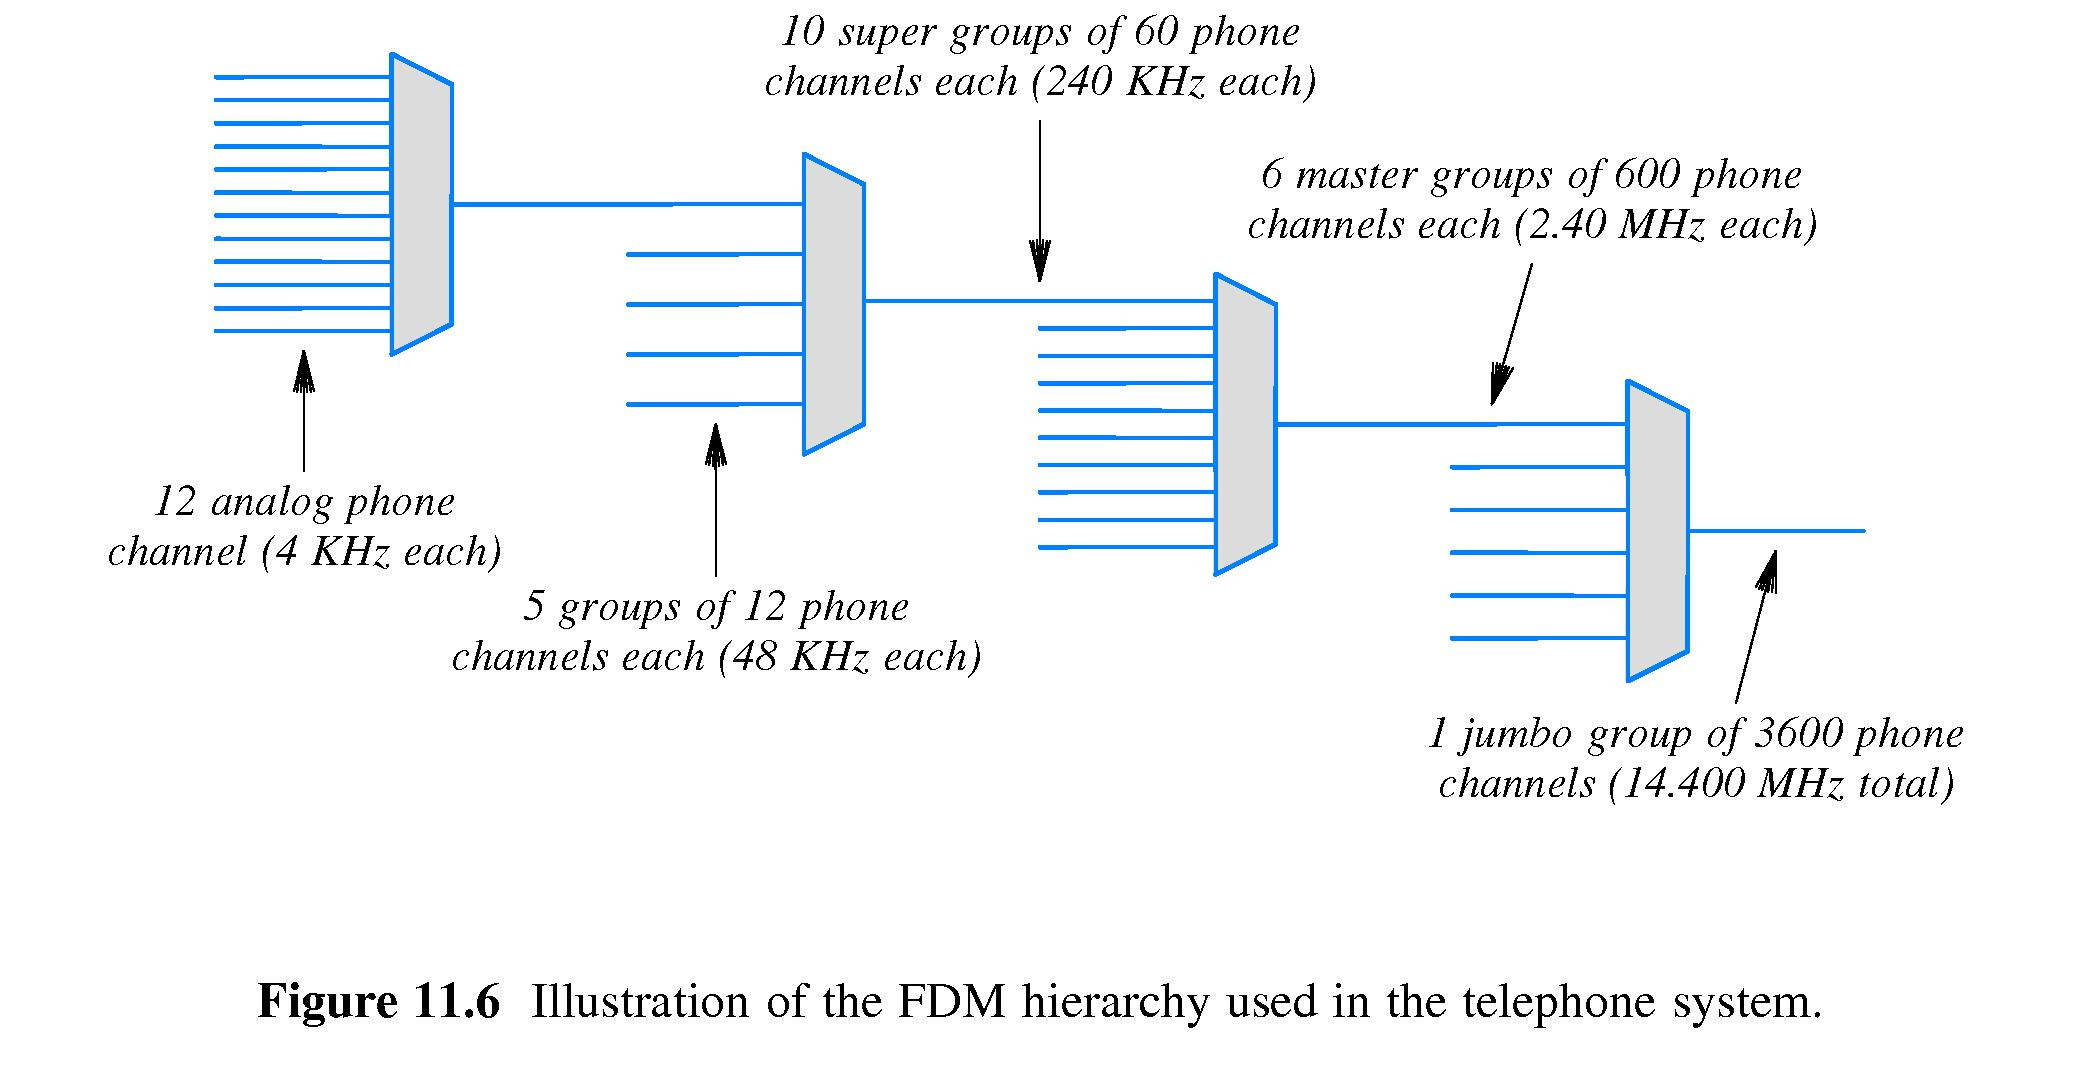 chapter 11 -- multiplexing and demultiplexing (channelization)